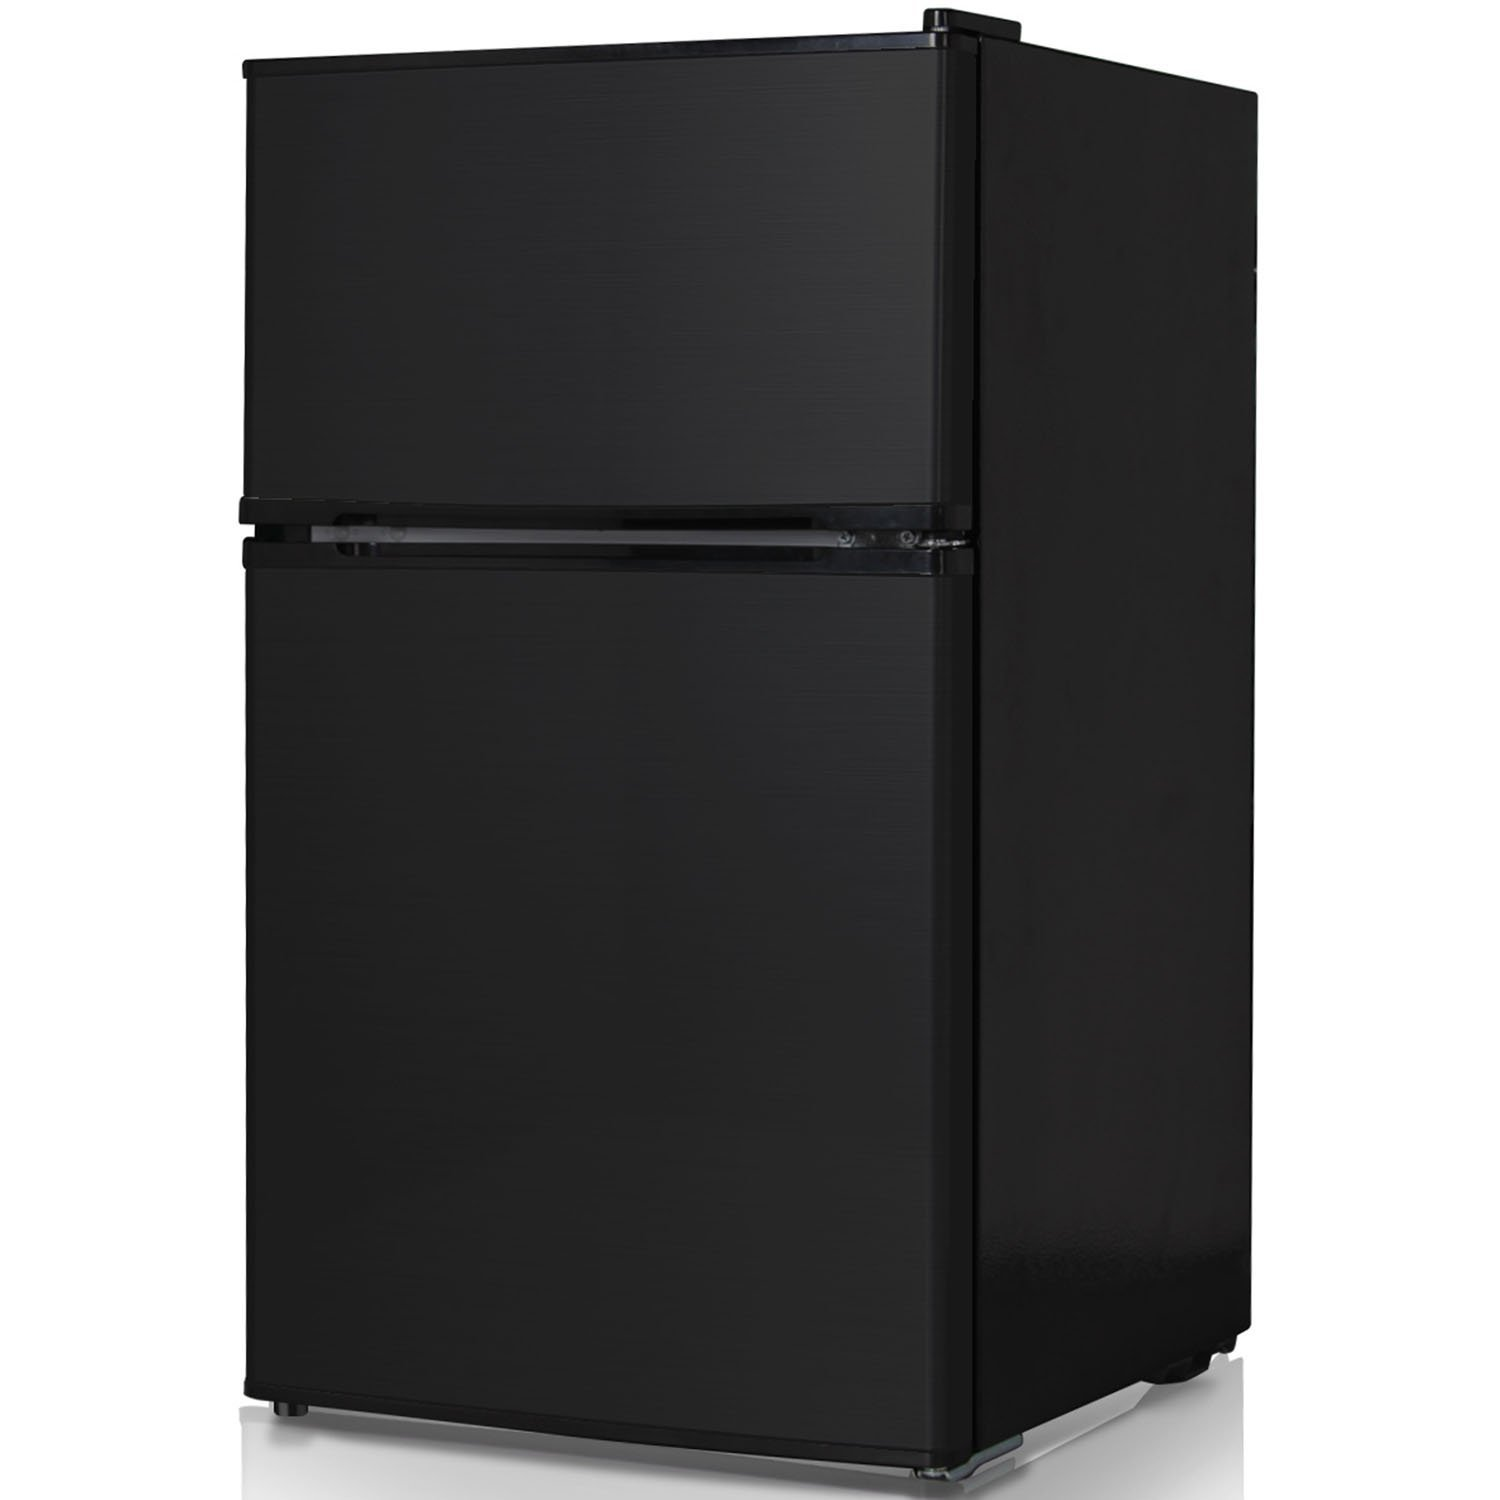 Keystone KSTRC312CB Compact 2-Door Refrigerator/Freezer, 3.1 Cubic Feet, Black: Appliances